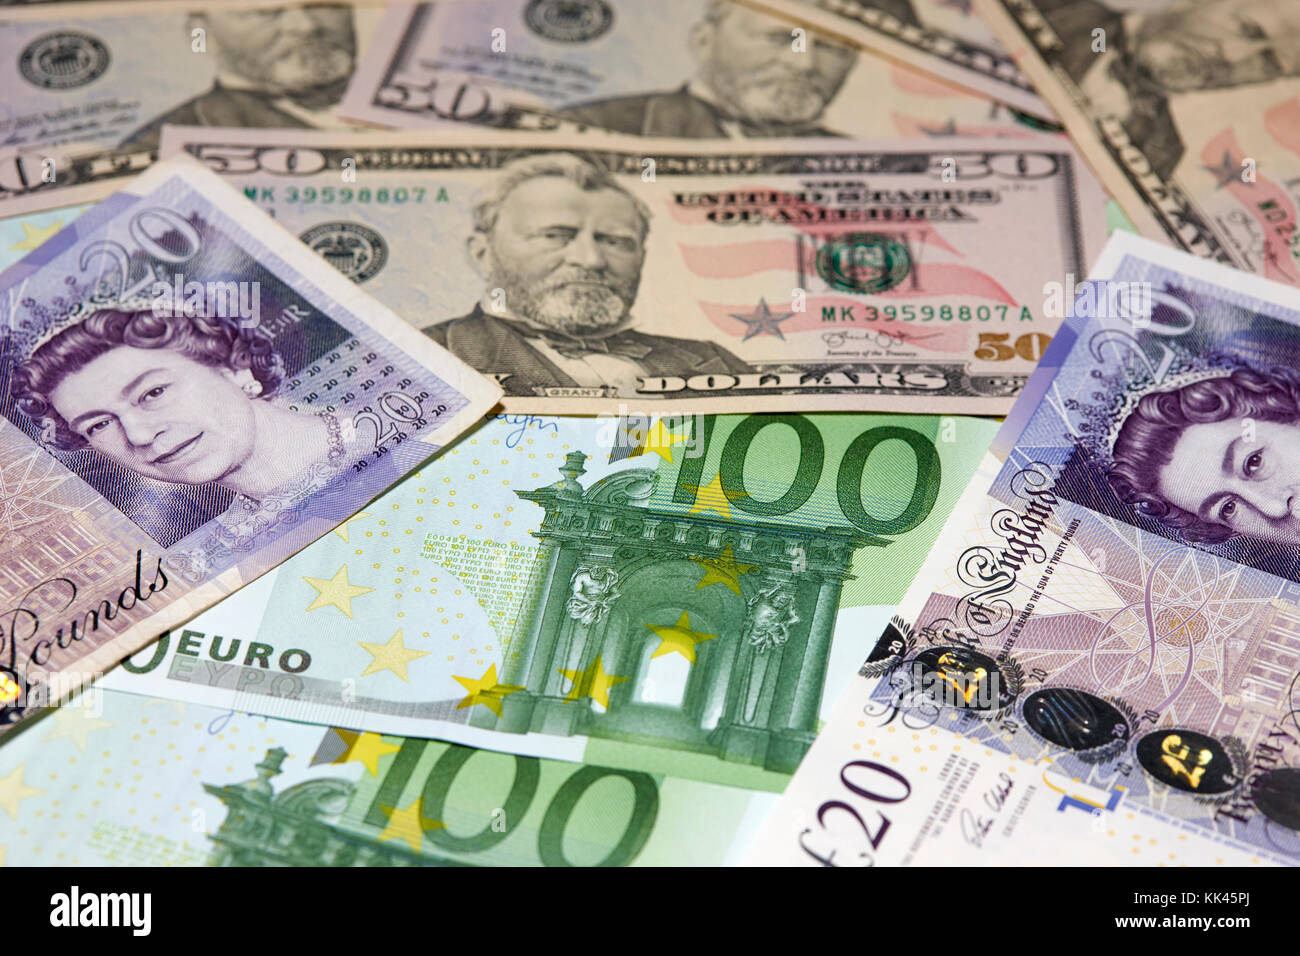 British Pounds Us Dollars And Euros Cash Notes Stock Image